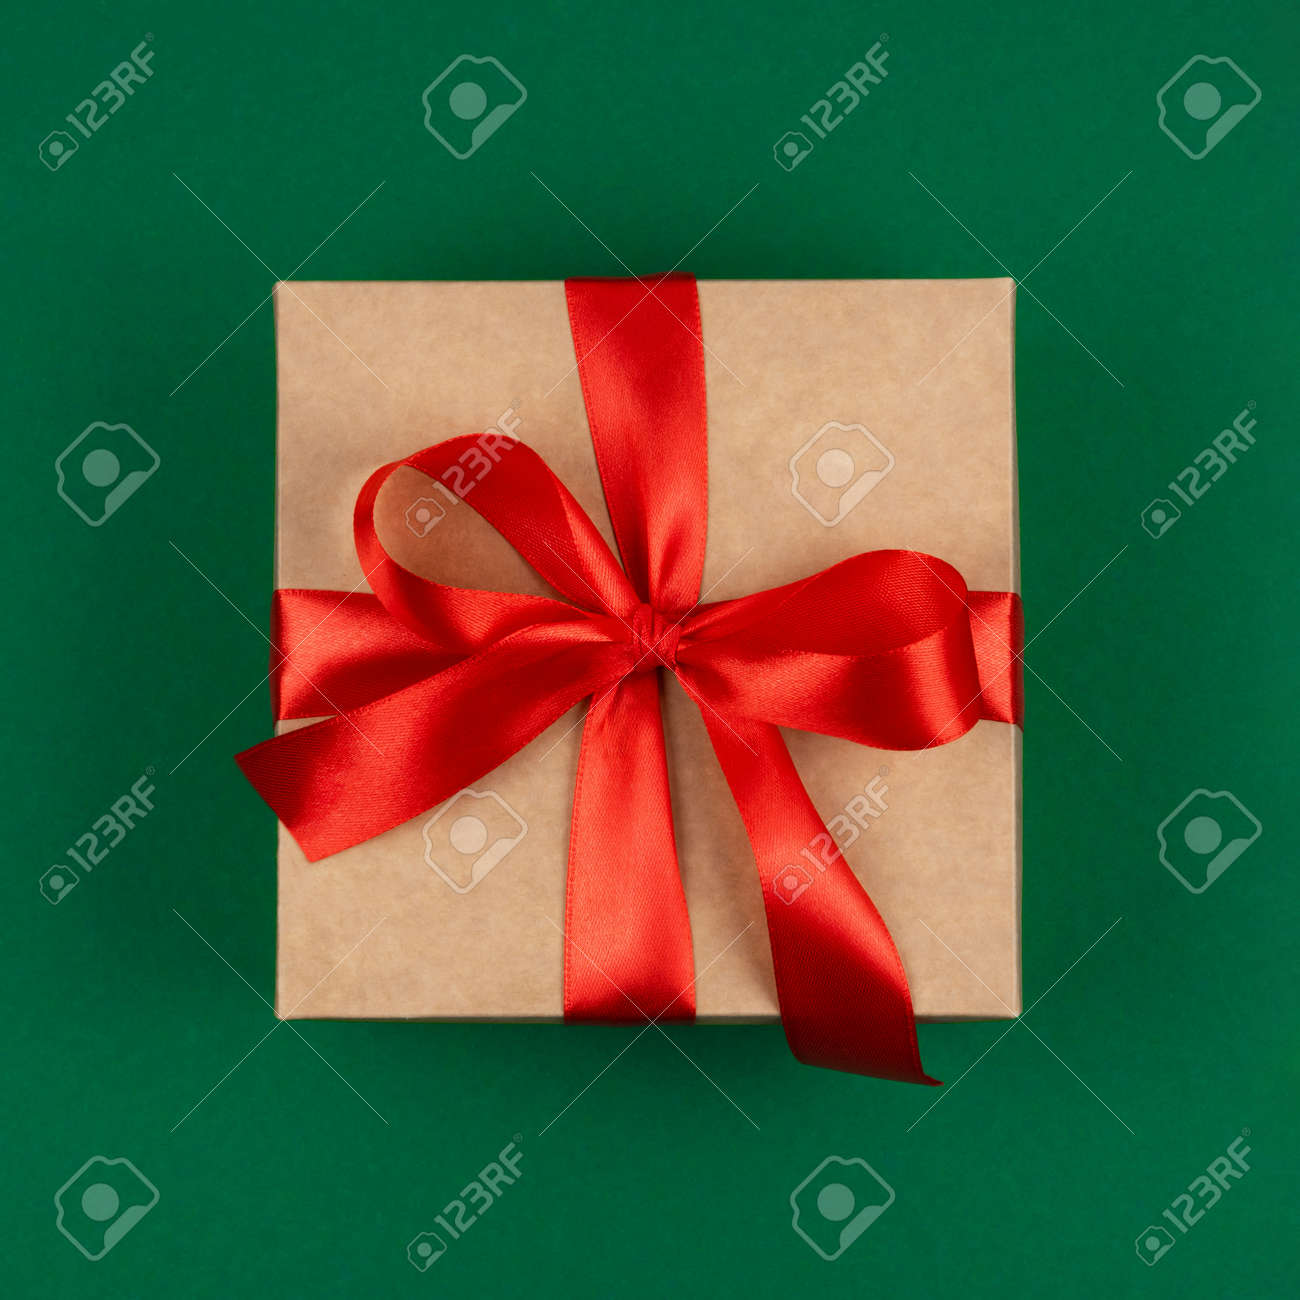 Top view of craft Merry Christmas gift with red bow ribbon over green background. Happy New Year greetings. Festive winter holidays backdrop. Flat lay. Happy Birthday card. - 158170698